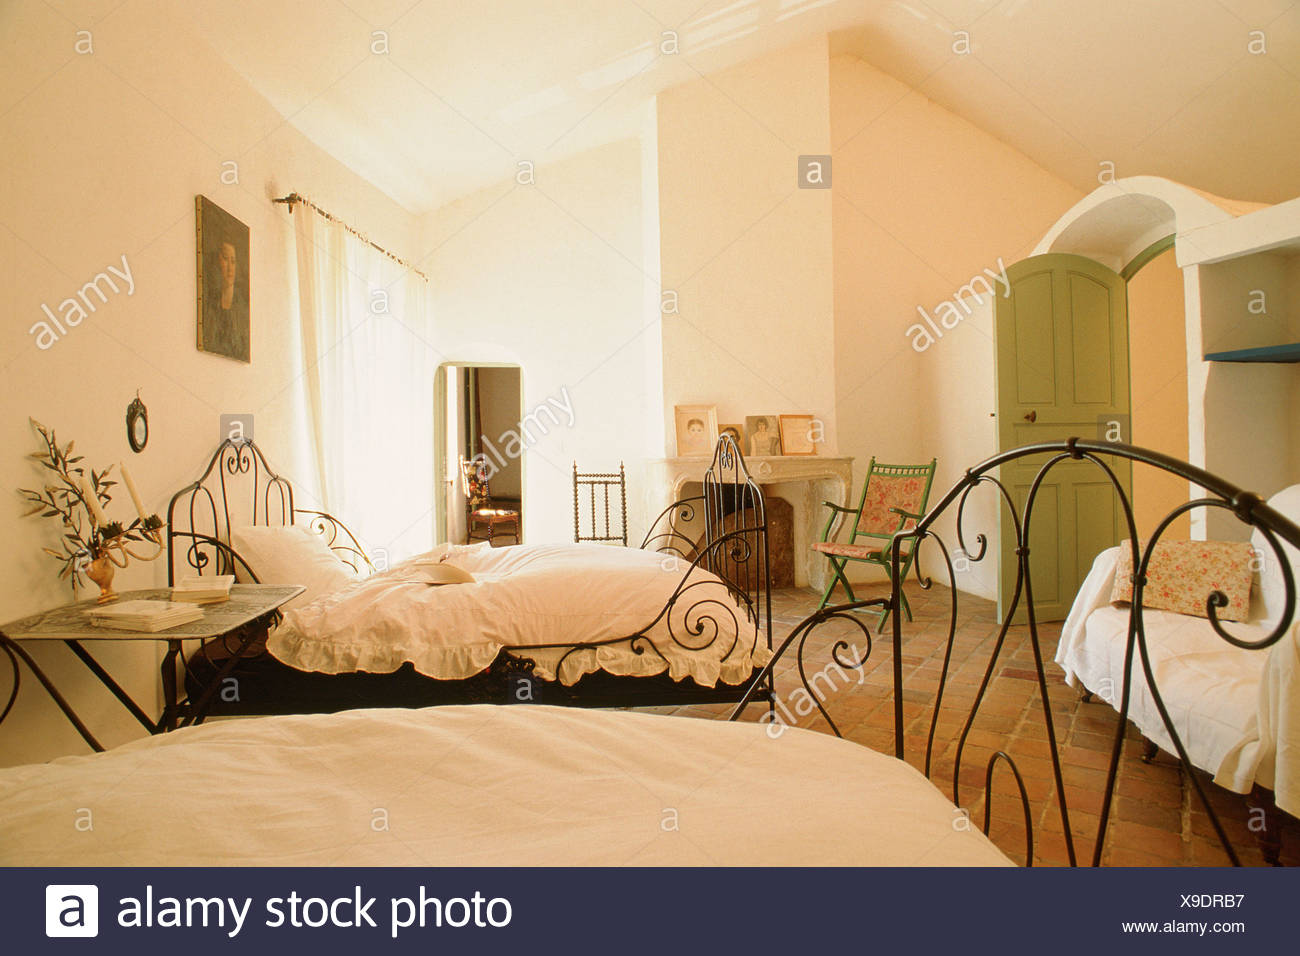 . Bedroom beds in wrought iron bench console table and armchair open